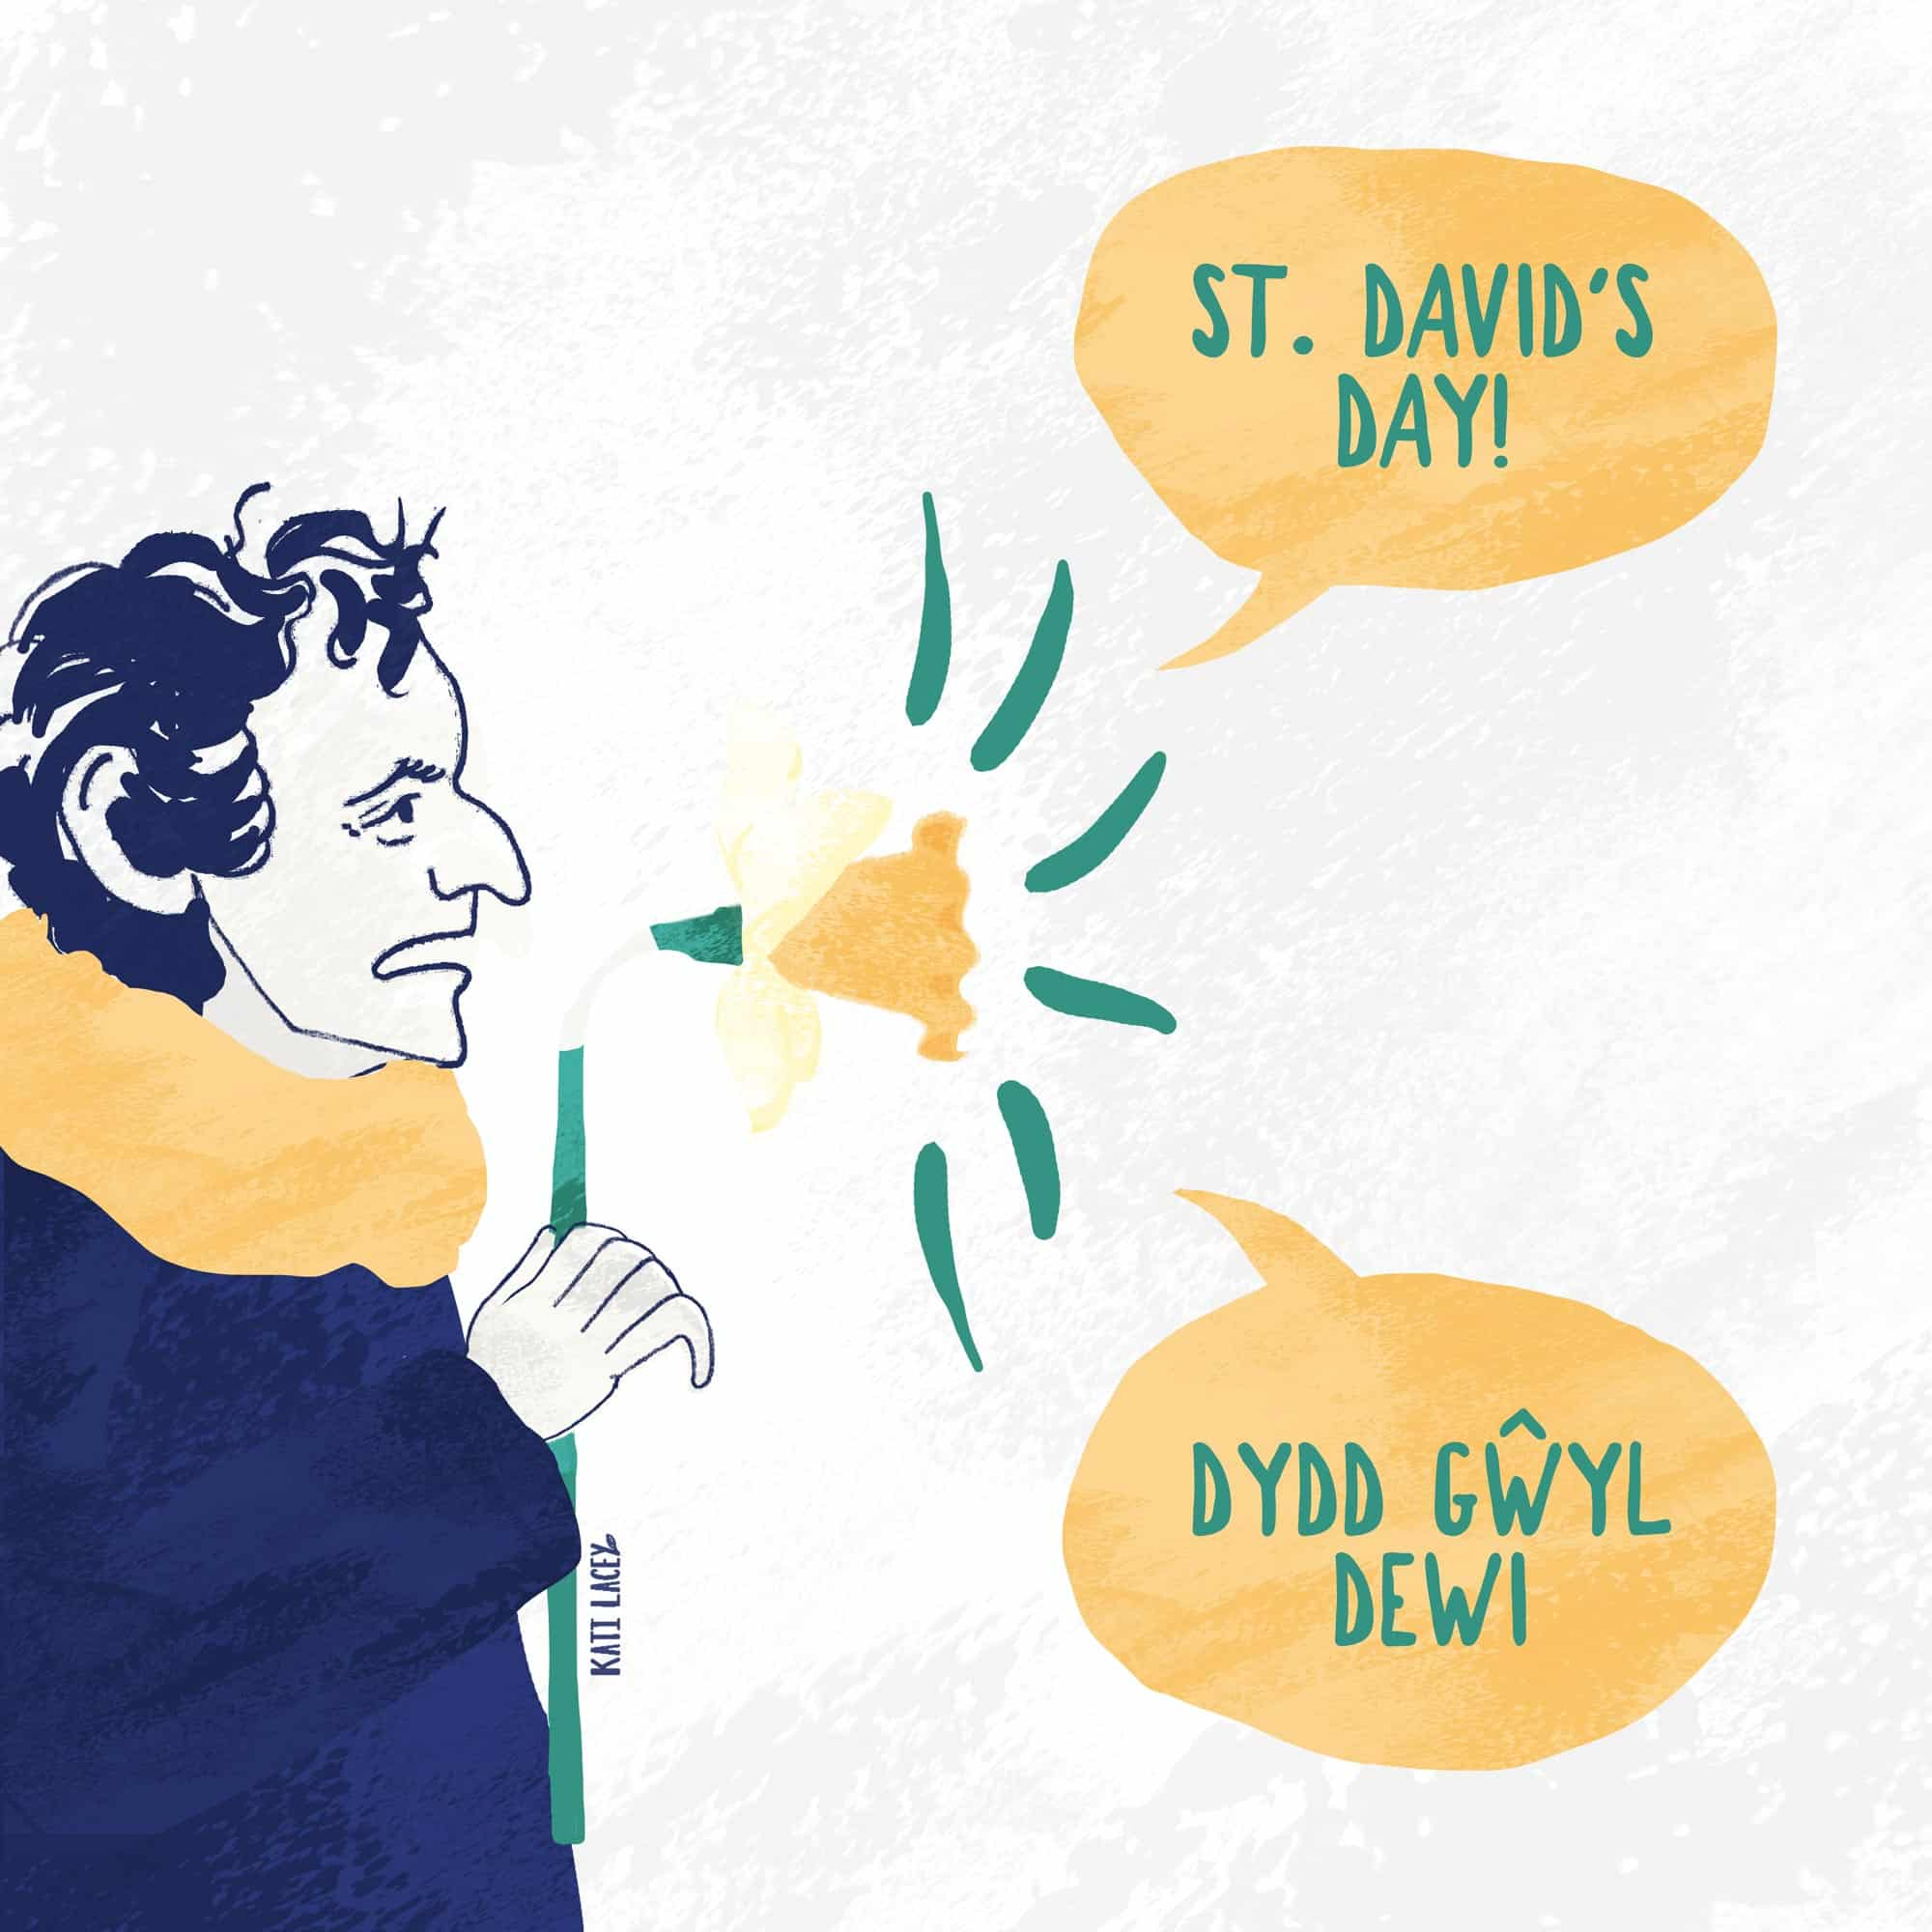 A man using a daffodil as a megaphone to announce St David's Day - It is a snowy scene and speech bubbles with English and Welsh come out of the daffodil megaphone